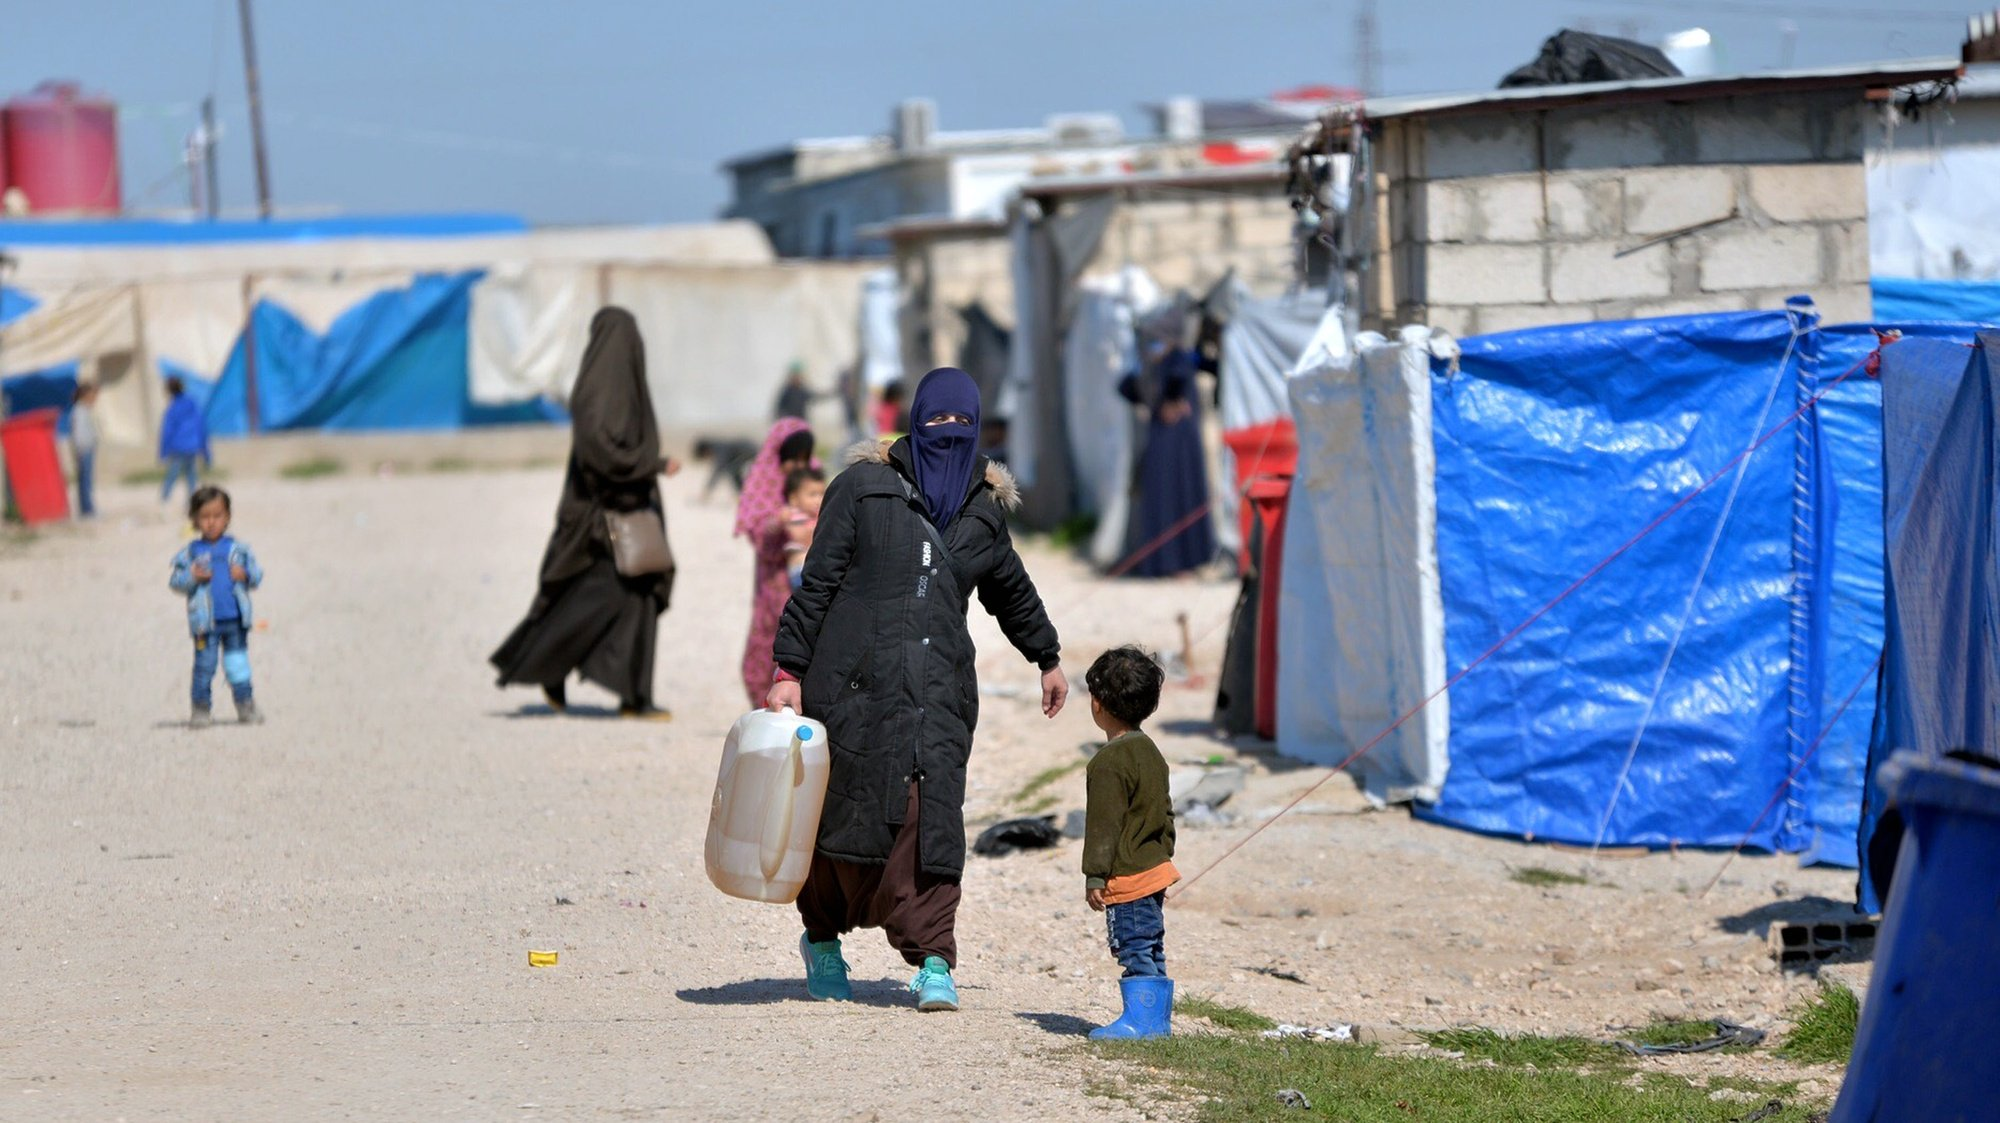 epa07393580 Displaced women walk at Roj refugees camp in Hasakah, northeast of Syria, 24 February 2019. The camp which is controlled by the US-backed Syrian Democratic Forces (SDF) houses over 300 families, most of them are wives and children of Islamic state (IS) fighters among them foreigners who arrived in the camp following the defeat of Islamic State group in its last strongholds in eastern Syria.  EPA/MURTAJA LATEEF